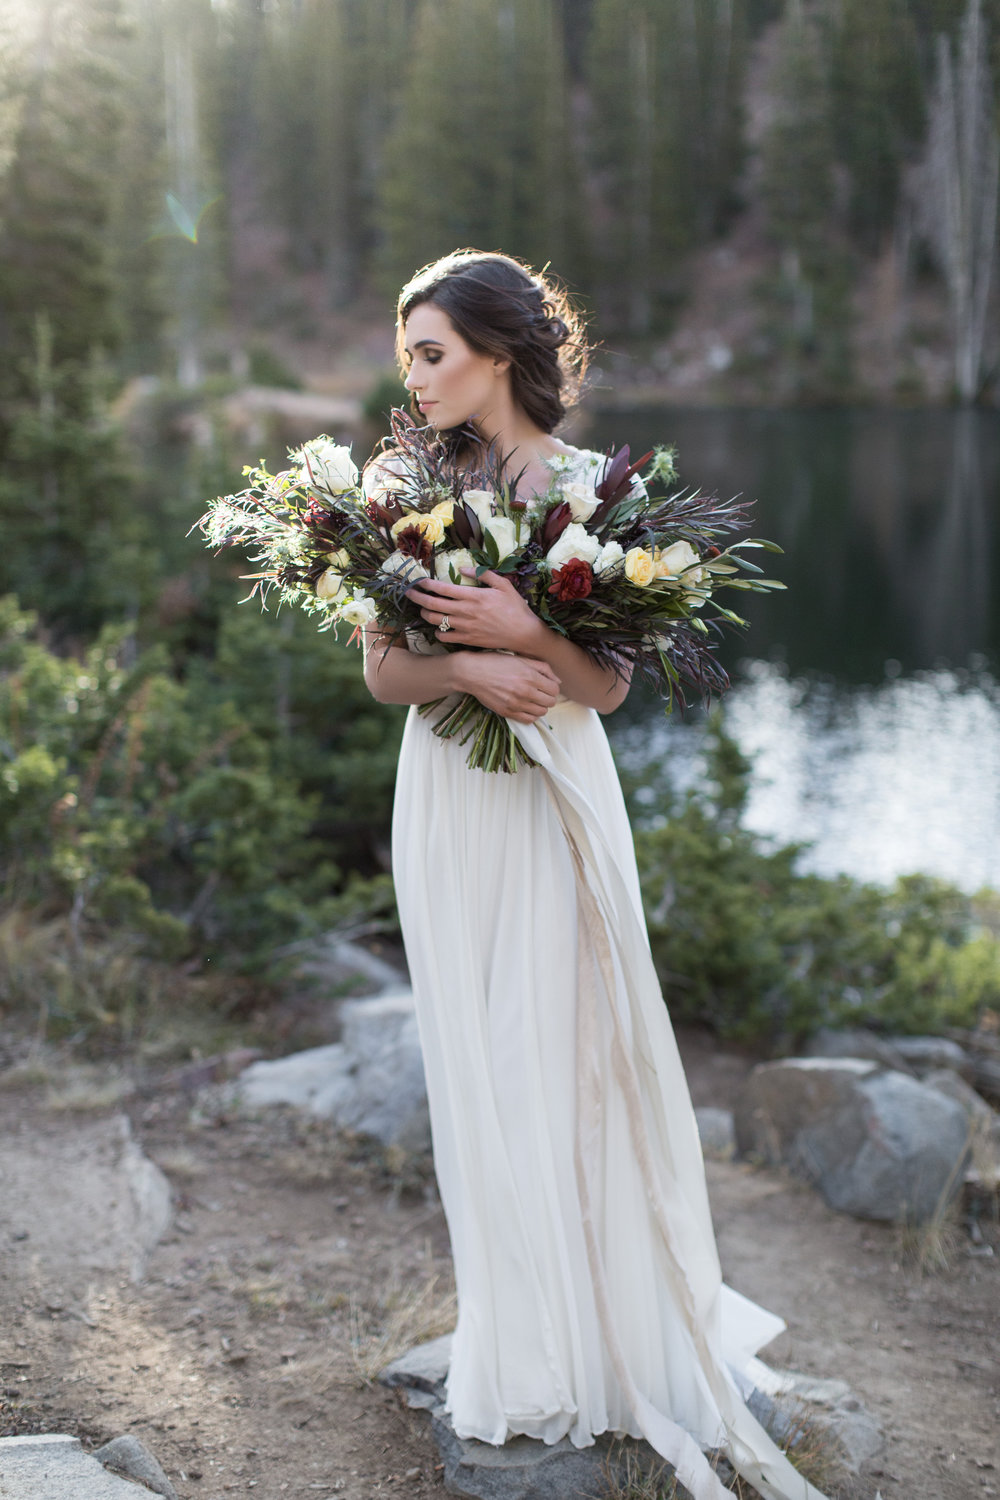 UtahValleyBrideShootTR2016 (97 of 110).jpg